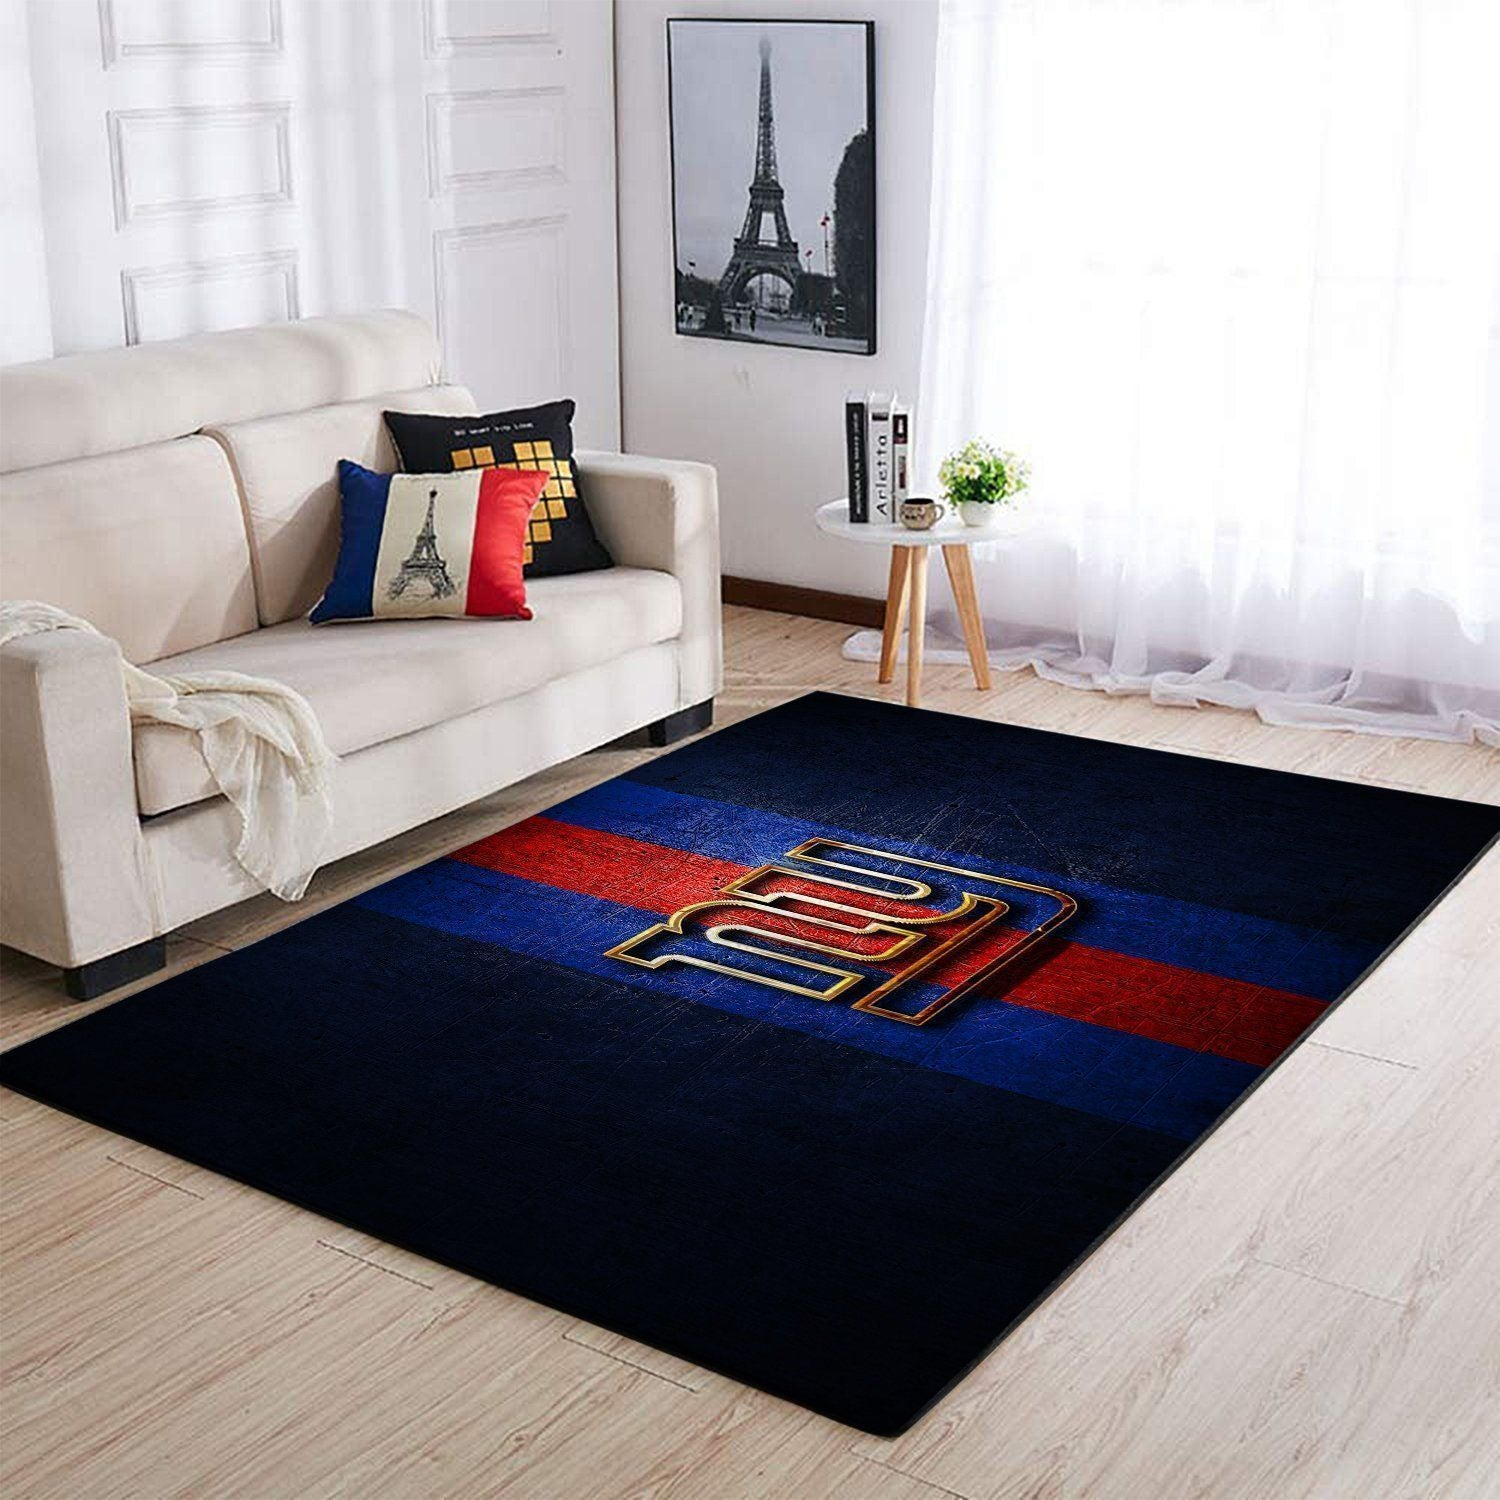 New York Giants Area Rugs NFL Football Living Room Carpet Team Logo Custom Floor Home Decor 191007